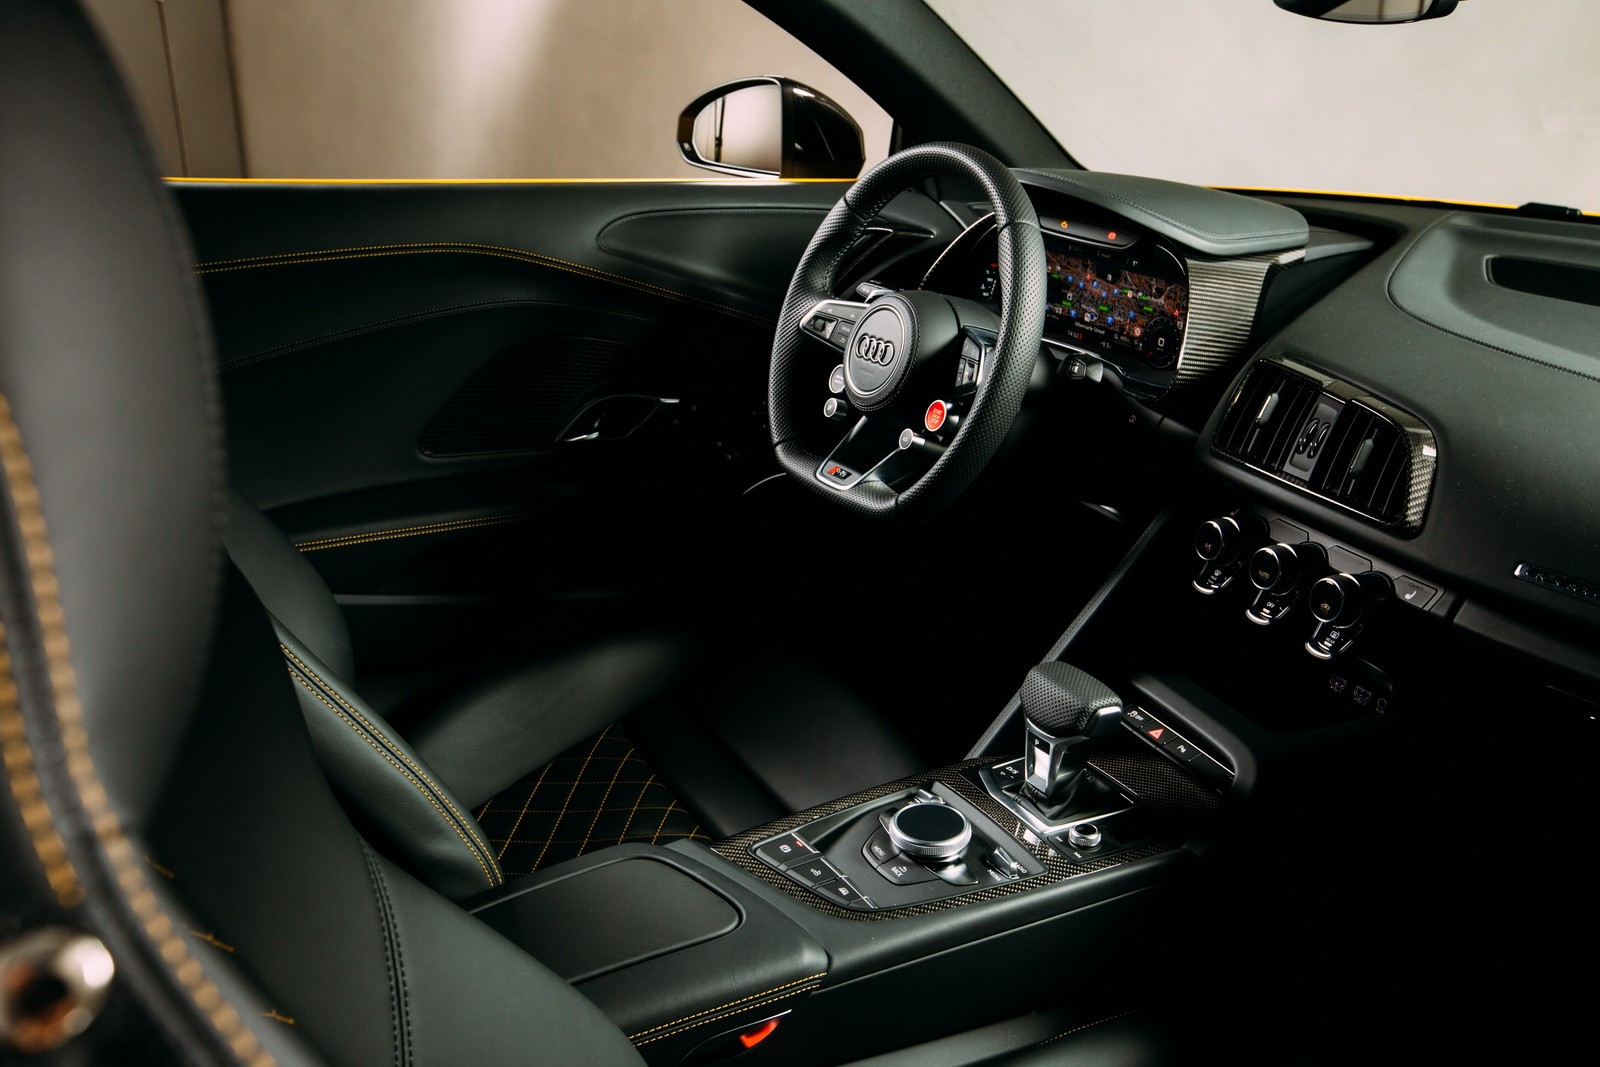 How Do You Rate The Audi R Spyder Roof Opening Mechanism - Audi rate